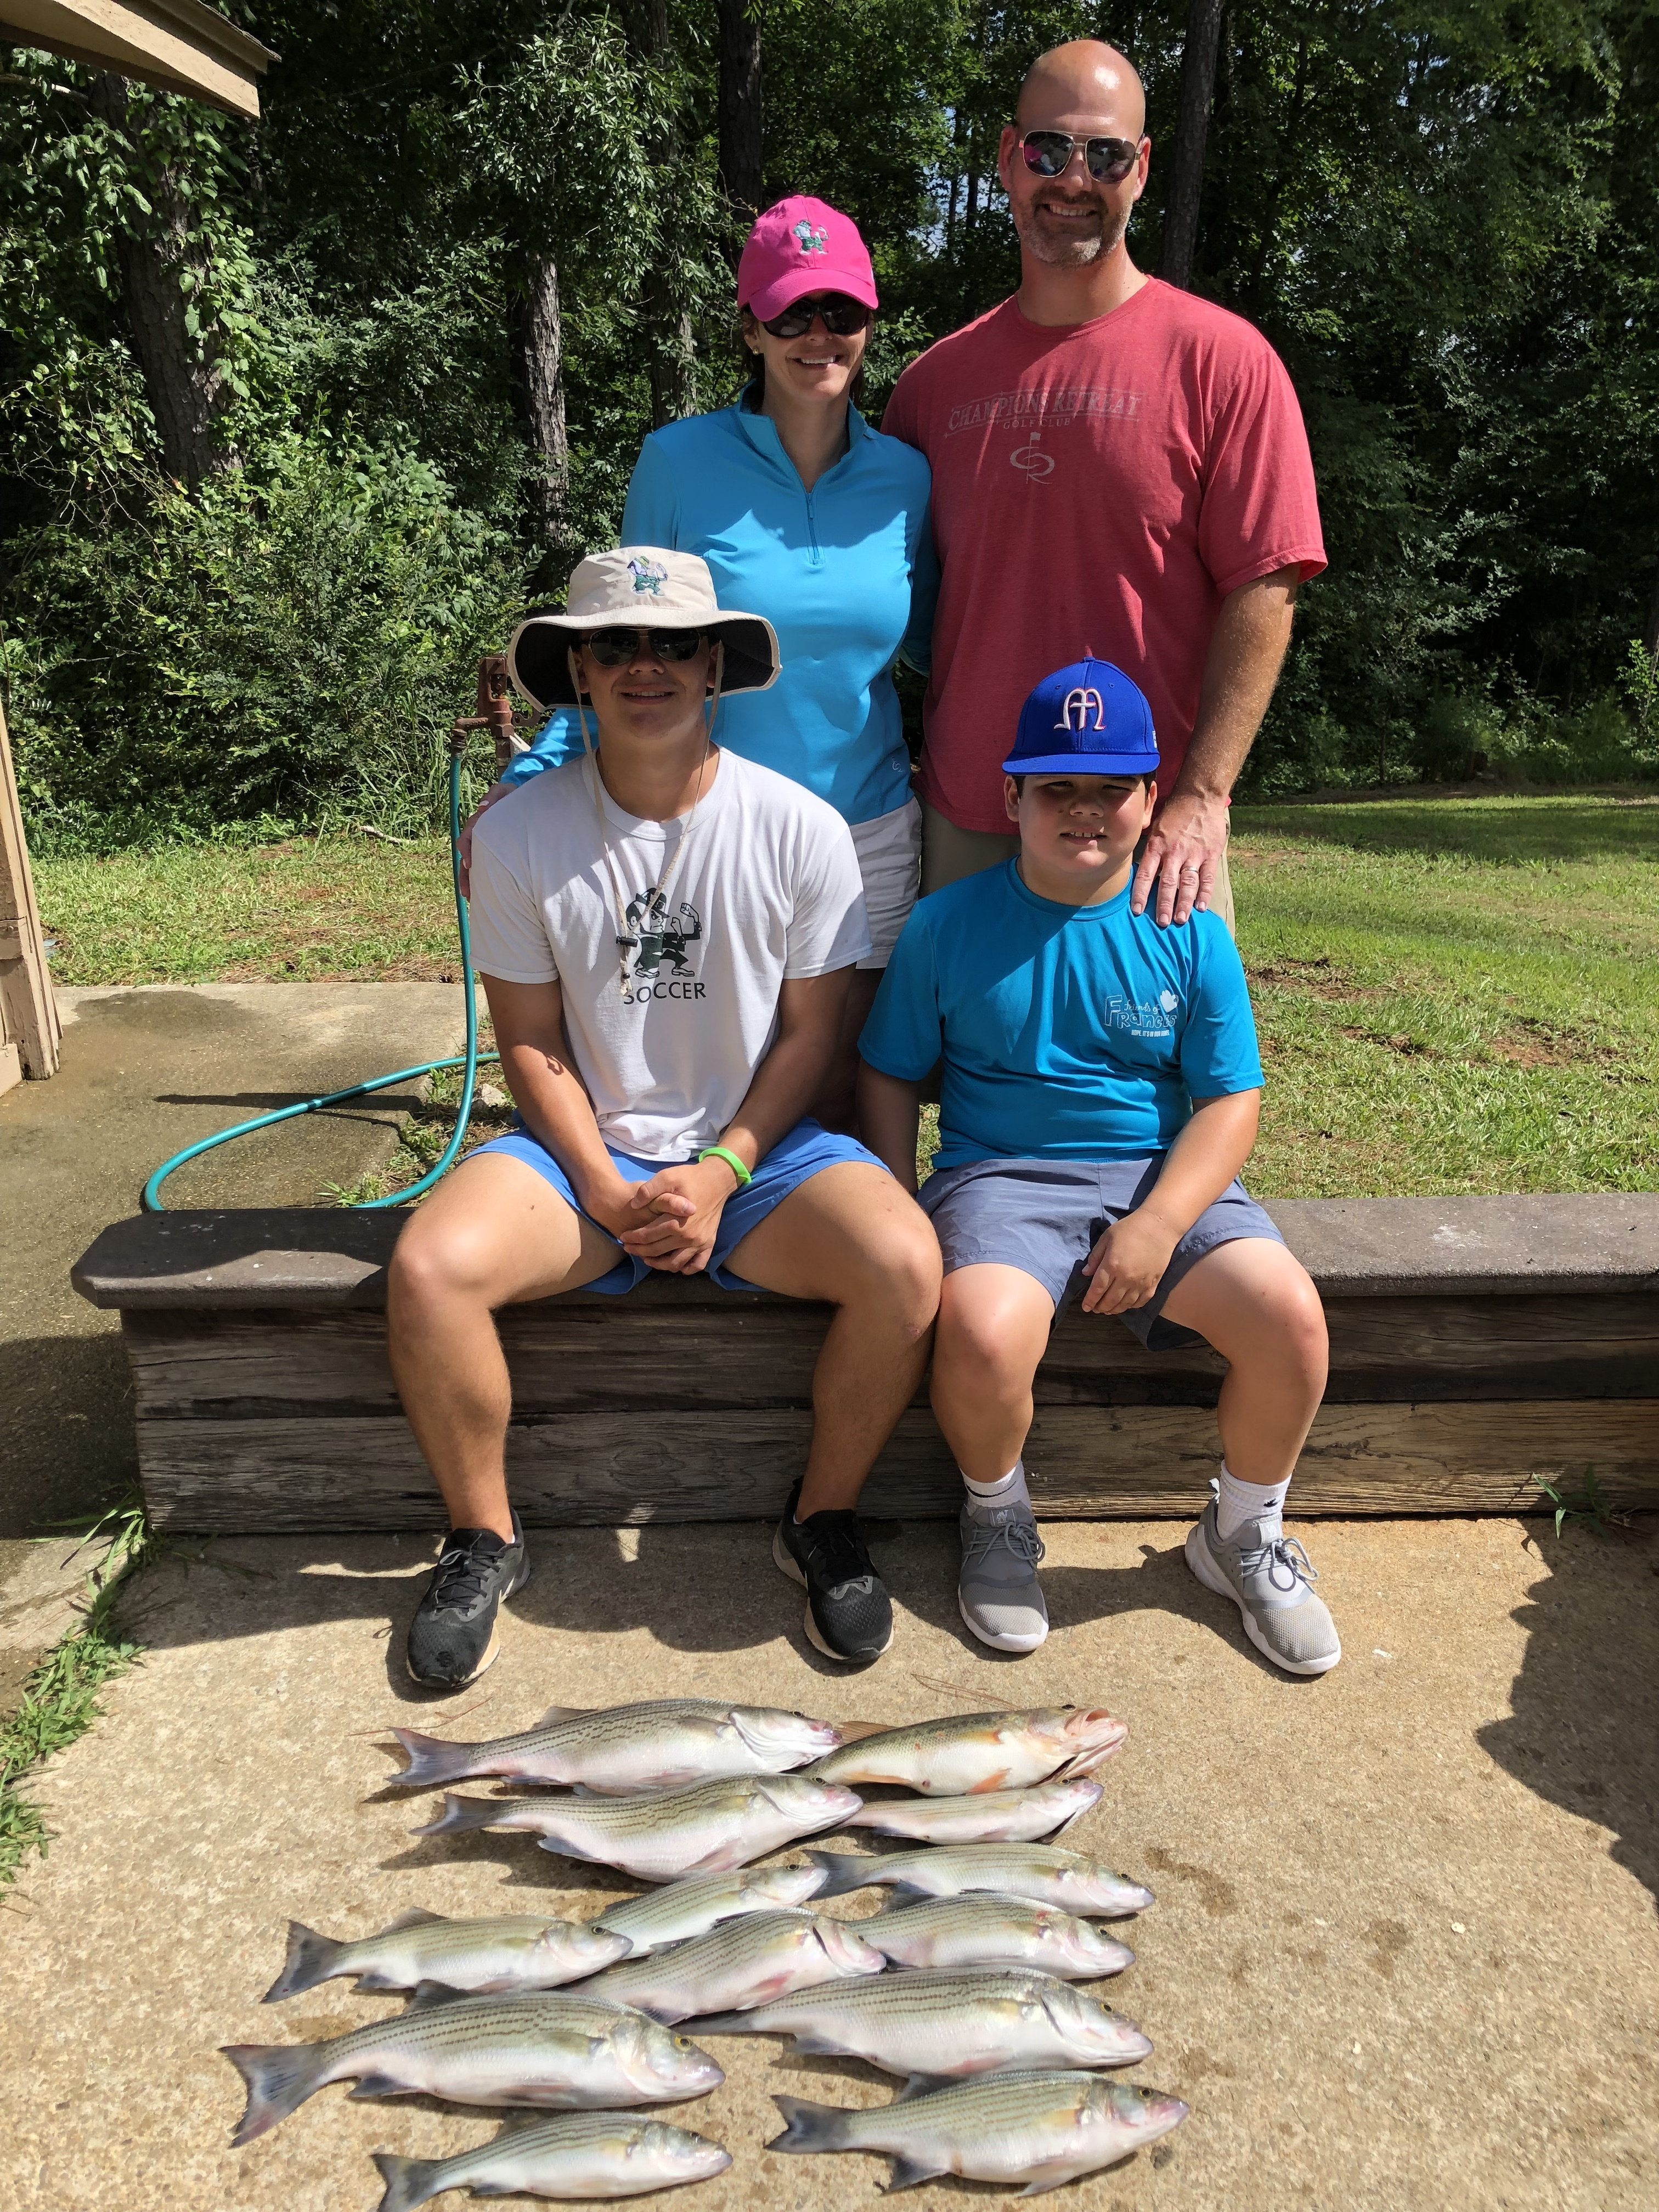 June-292019-Alison-Craig-John-and-Will-Parish-with-their-catch-of-the-day.